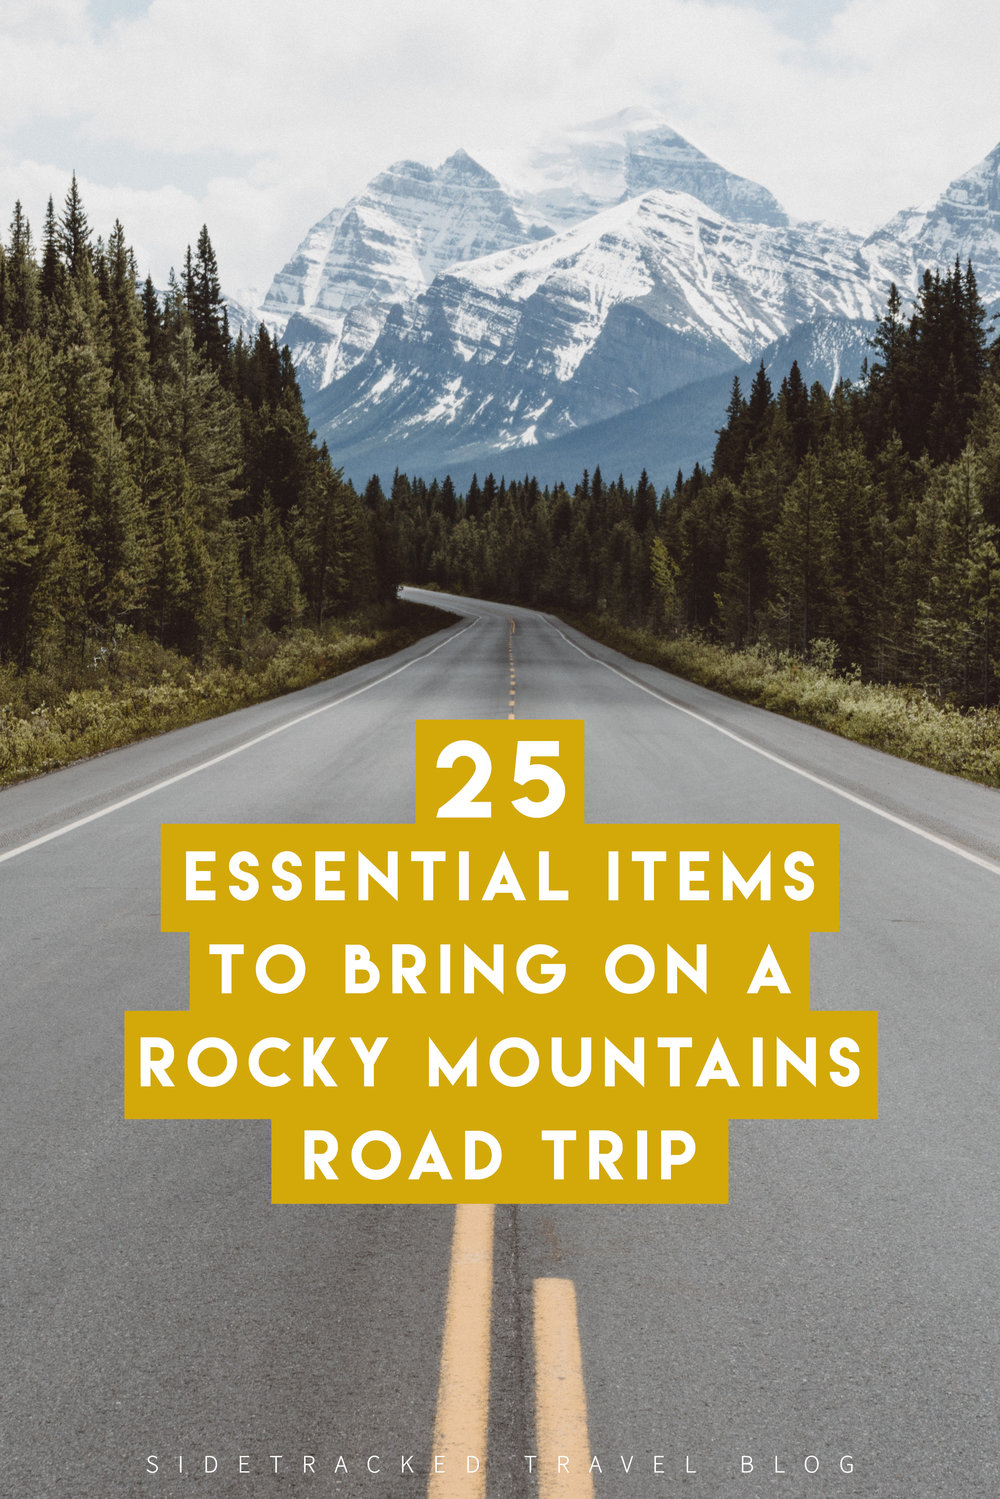 If you're headed off on a road trip through the Rocky Mountains, you're guaranteed to experience unforgettable natural scenery, wildlife sightings, mountain town hospitality, and plenty of outdoor activities, no matter the season. To help you feel more prepared so you can truly enjoy your trip, here are 25 essential items you shouldn't leave home without!